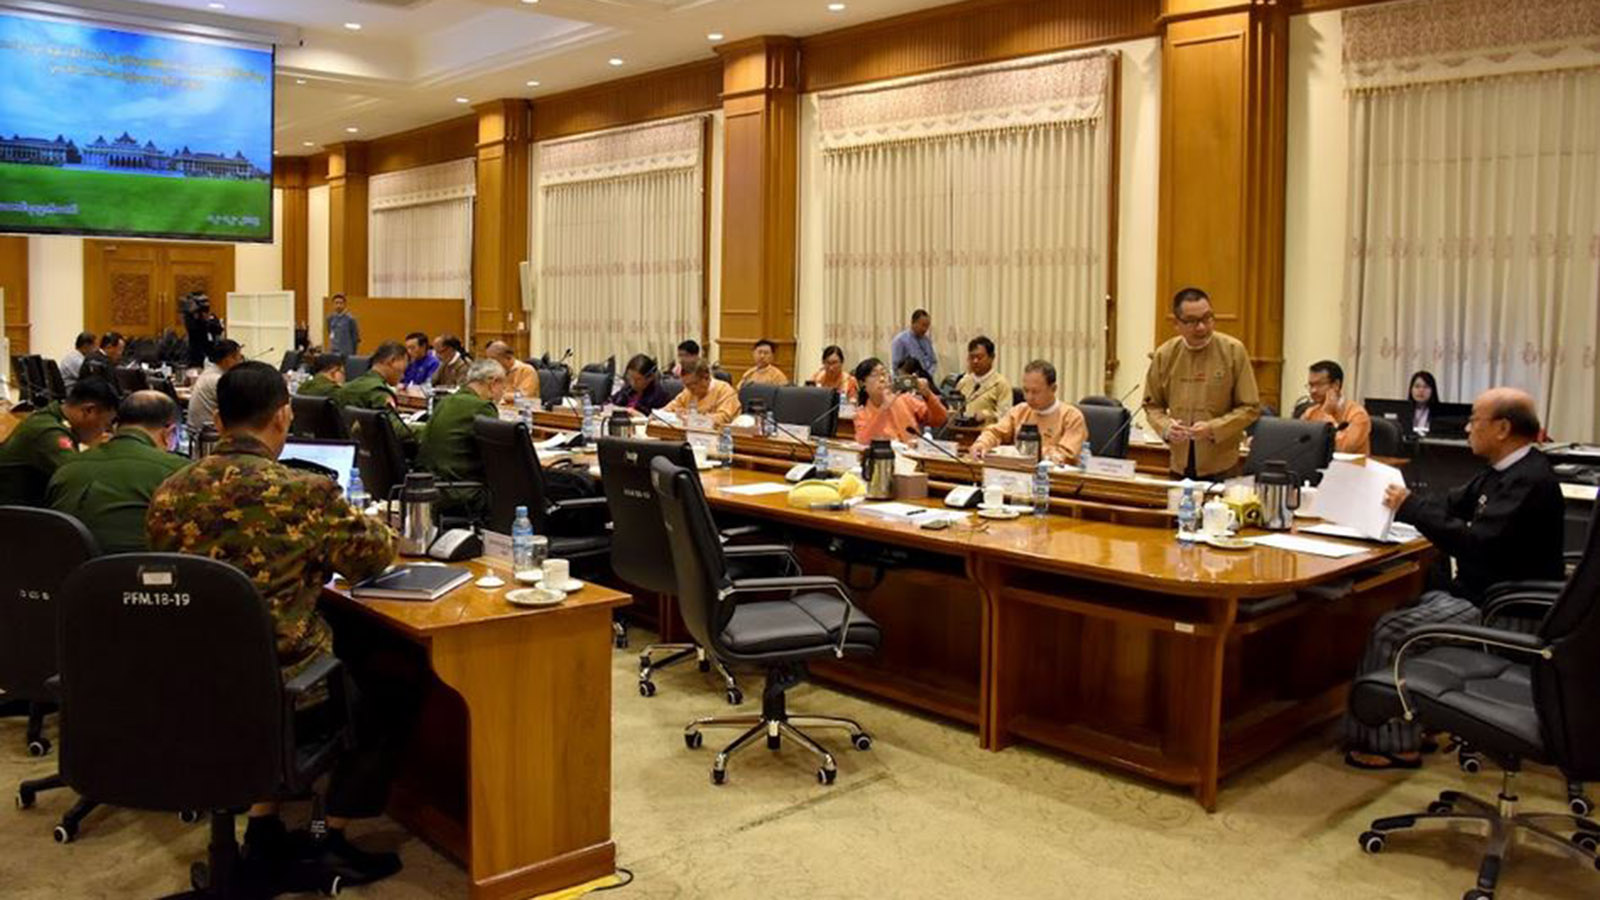 Pyidaungsu Hluttaw Deputy Speaker U Tun Tun Hein attends the Joint Committee on Amending the 2008 Constitution meeting 68/2019 in Nay Pyi Taw yesterday.Photo: MNA